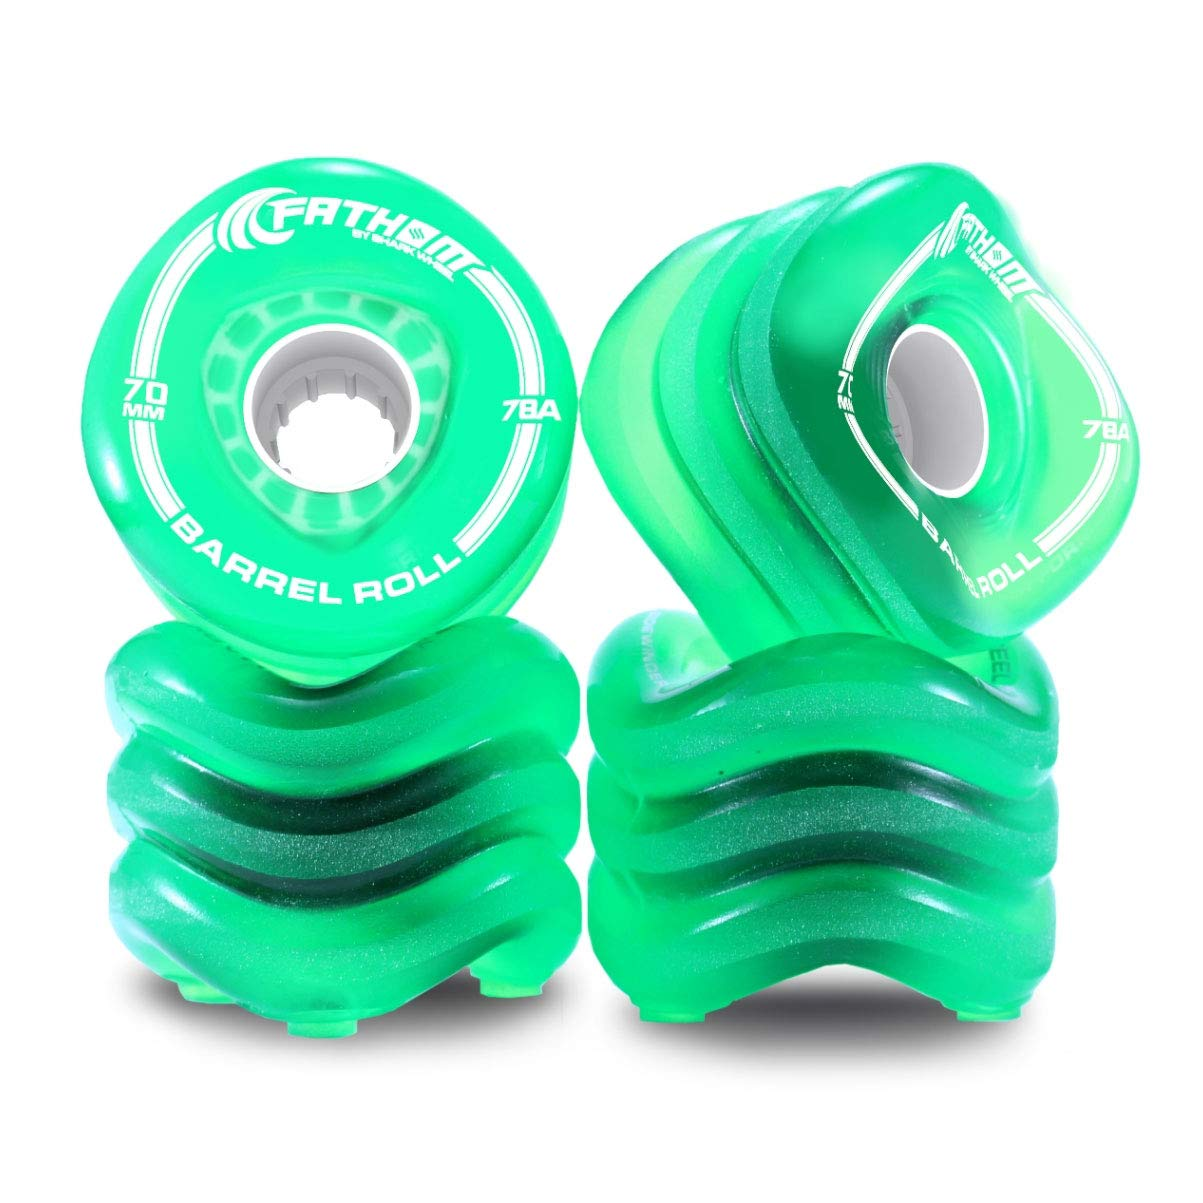 Shark Wheel Barrel Roll 70MM Long Board Wheels, Transparent Green by Shark Wheel